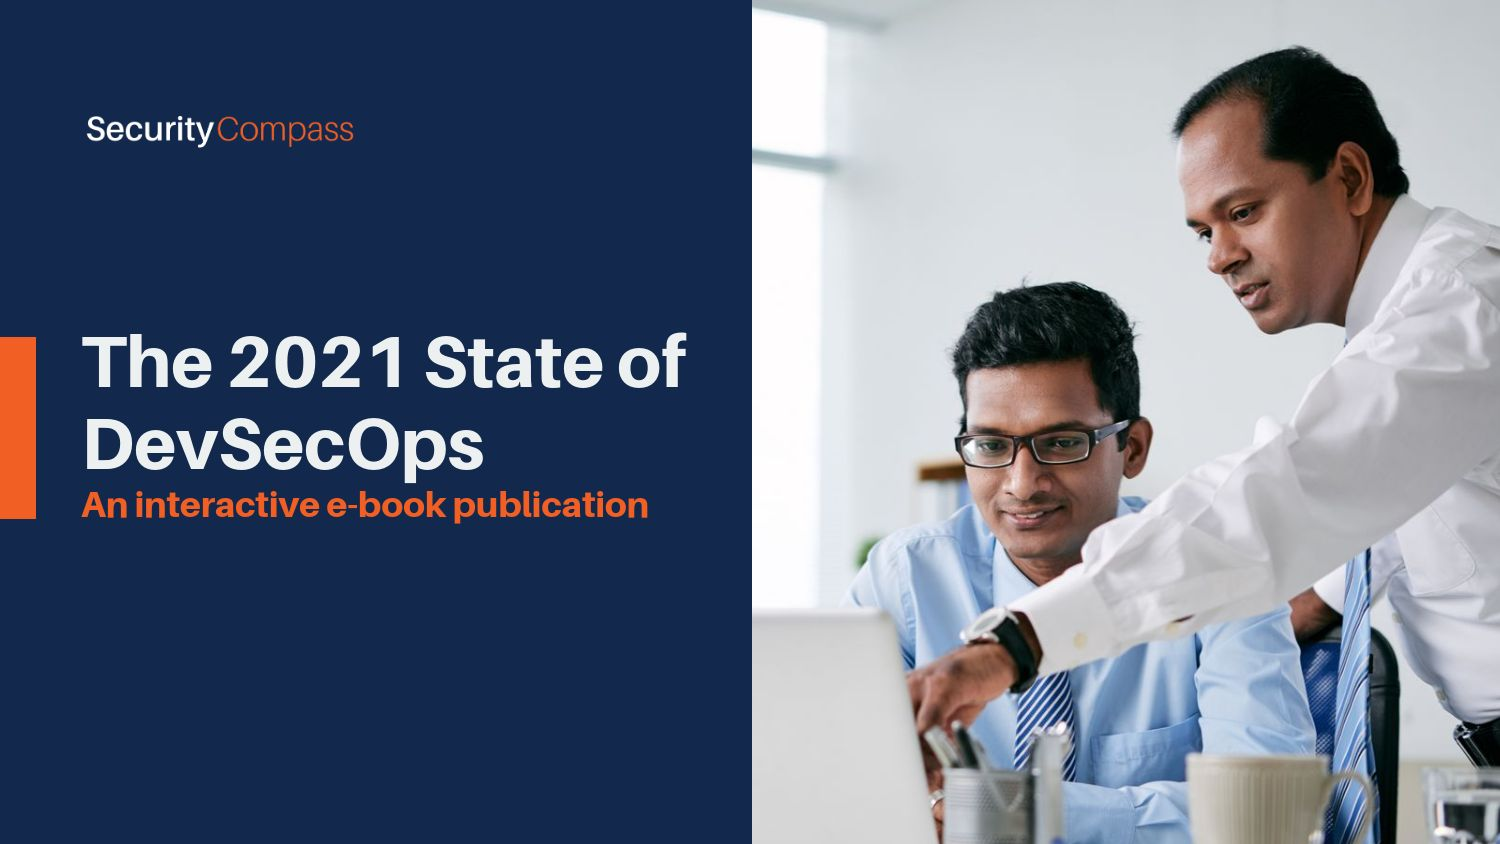 The 2021 State of DevSecOps Report